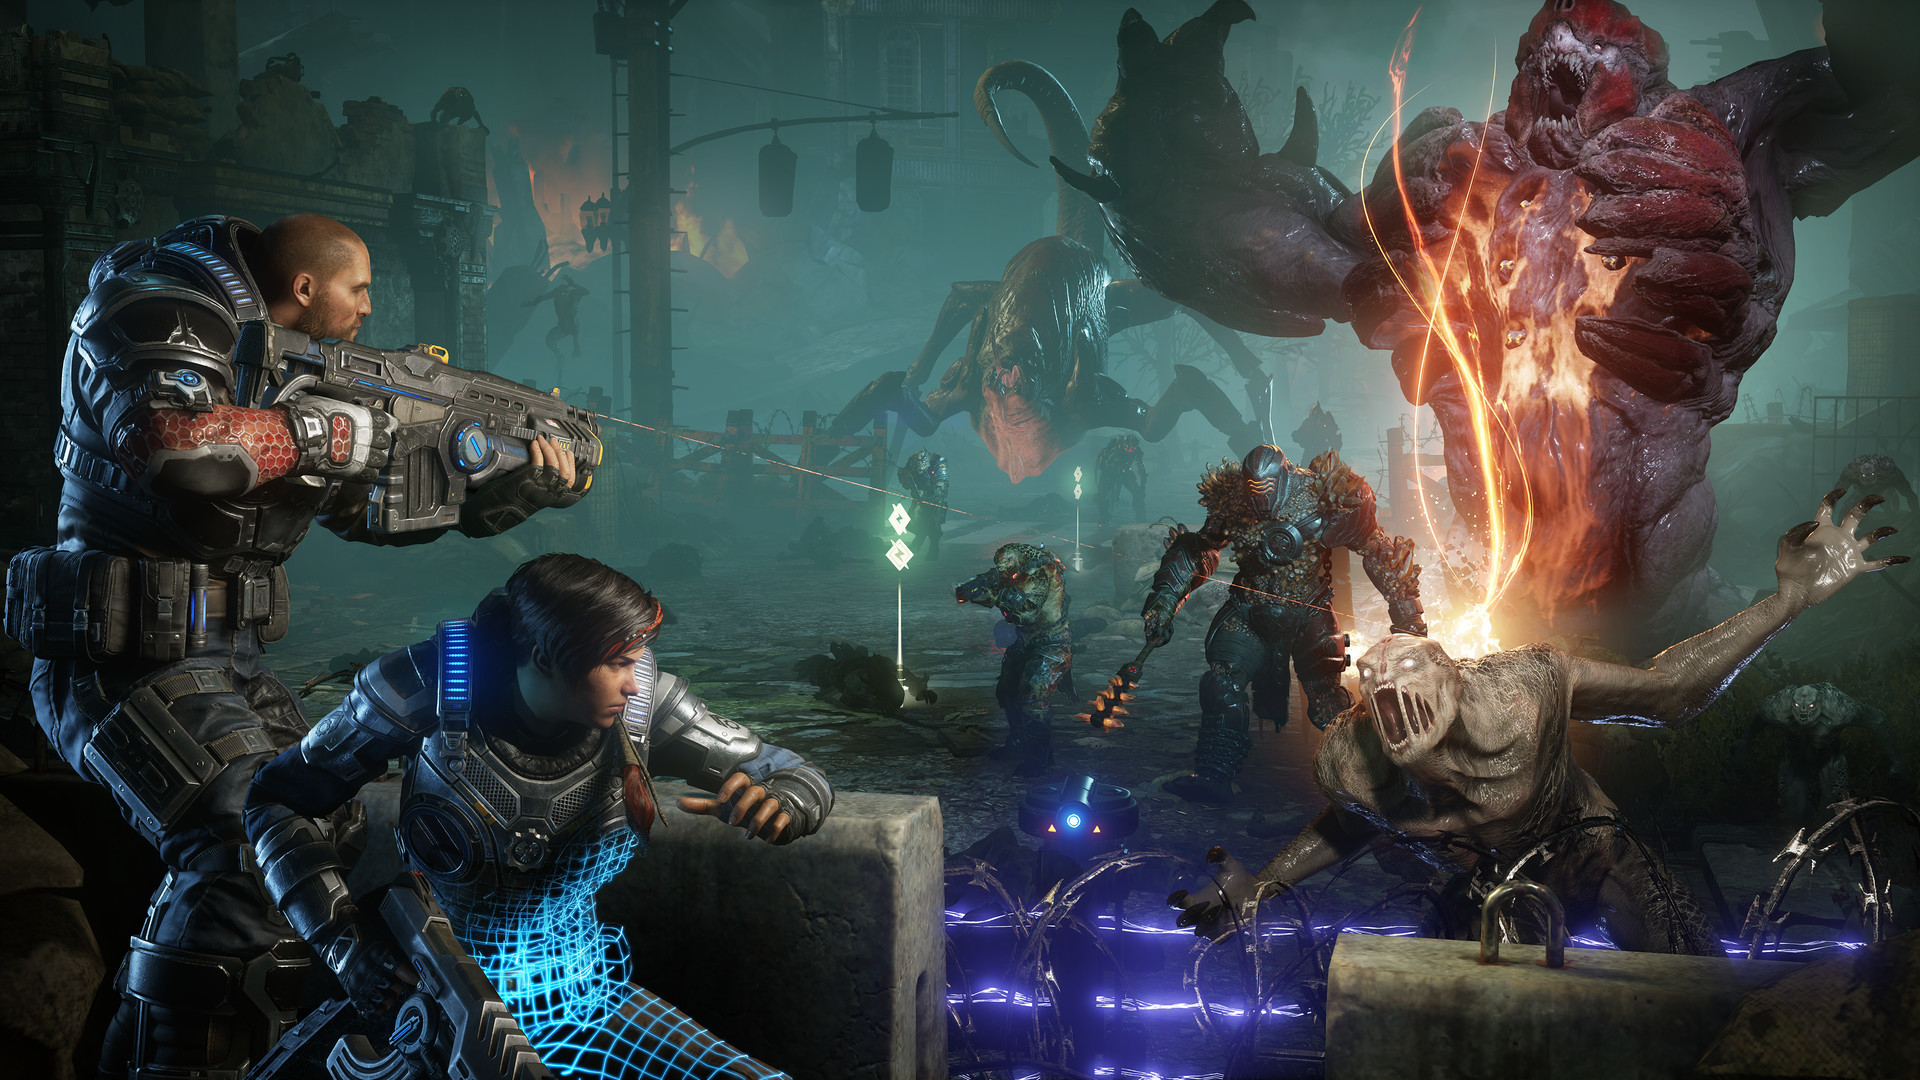 AMD Radeon 19 7 2 driver brings in support for Gears 5 Tech Test